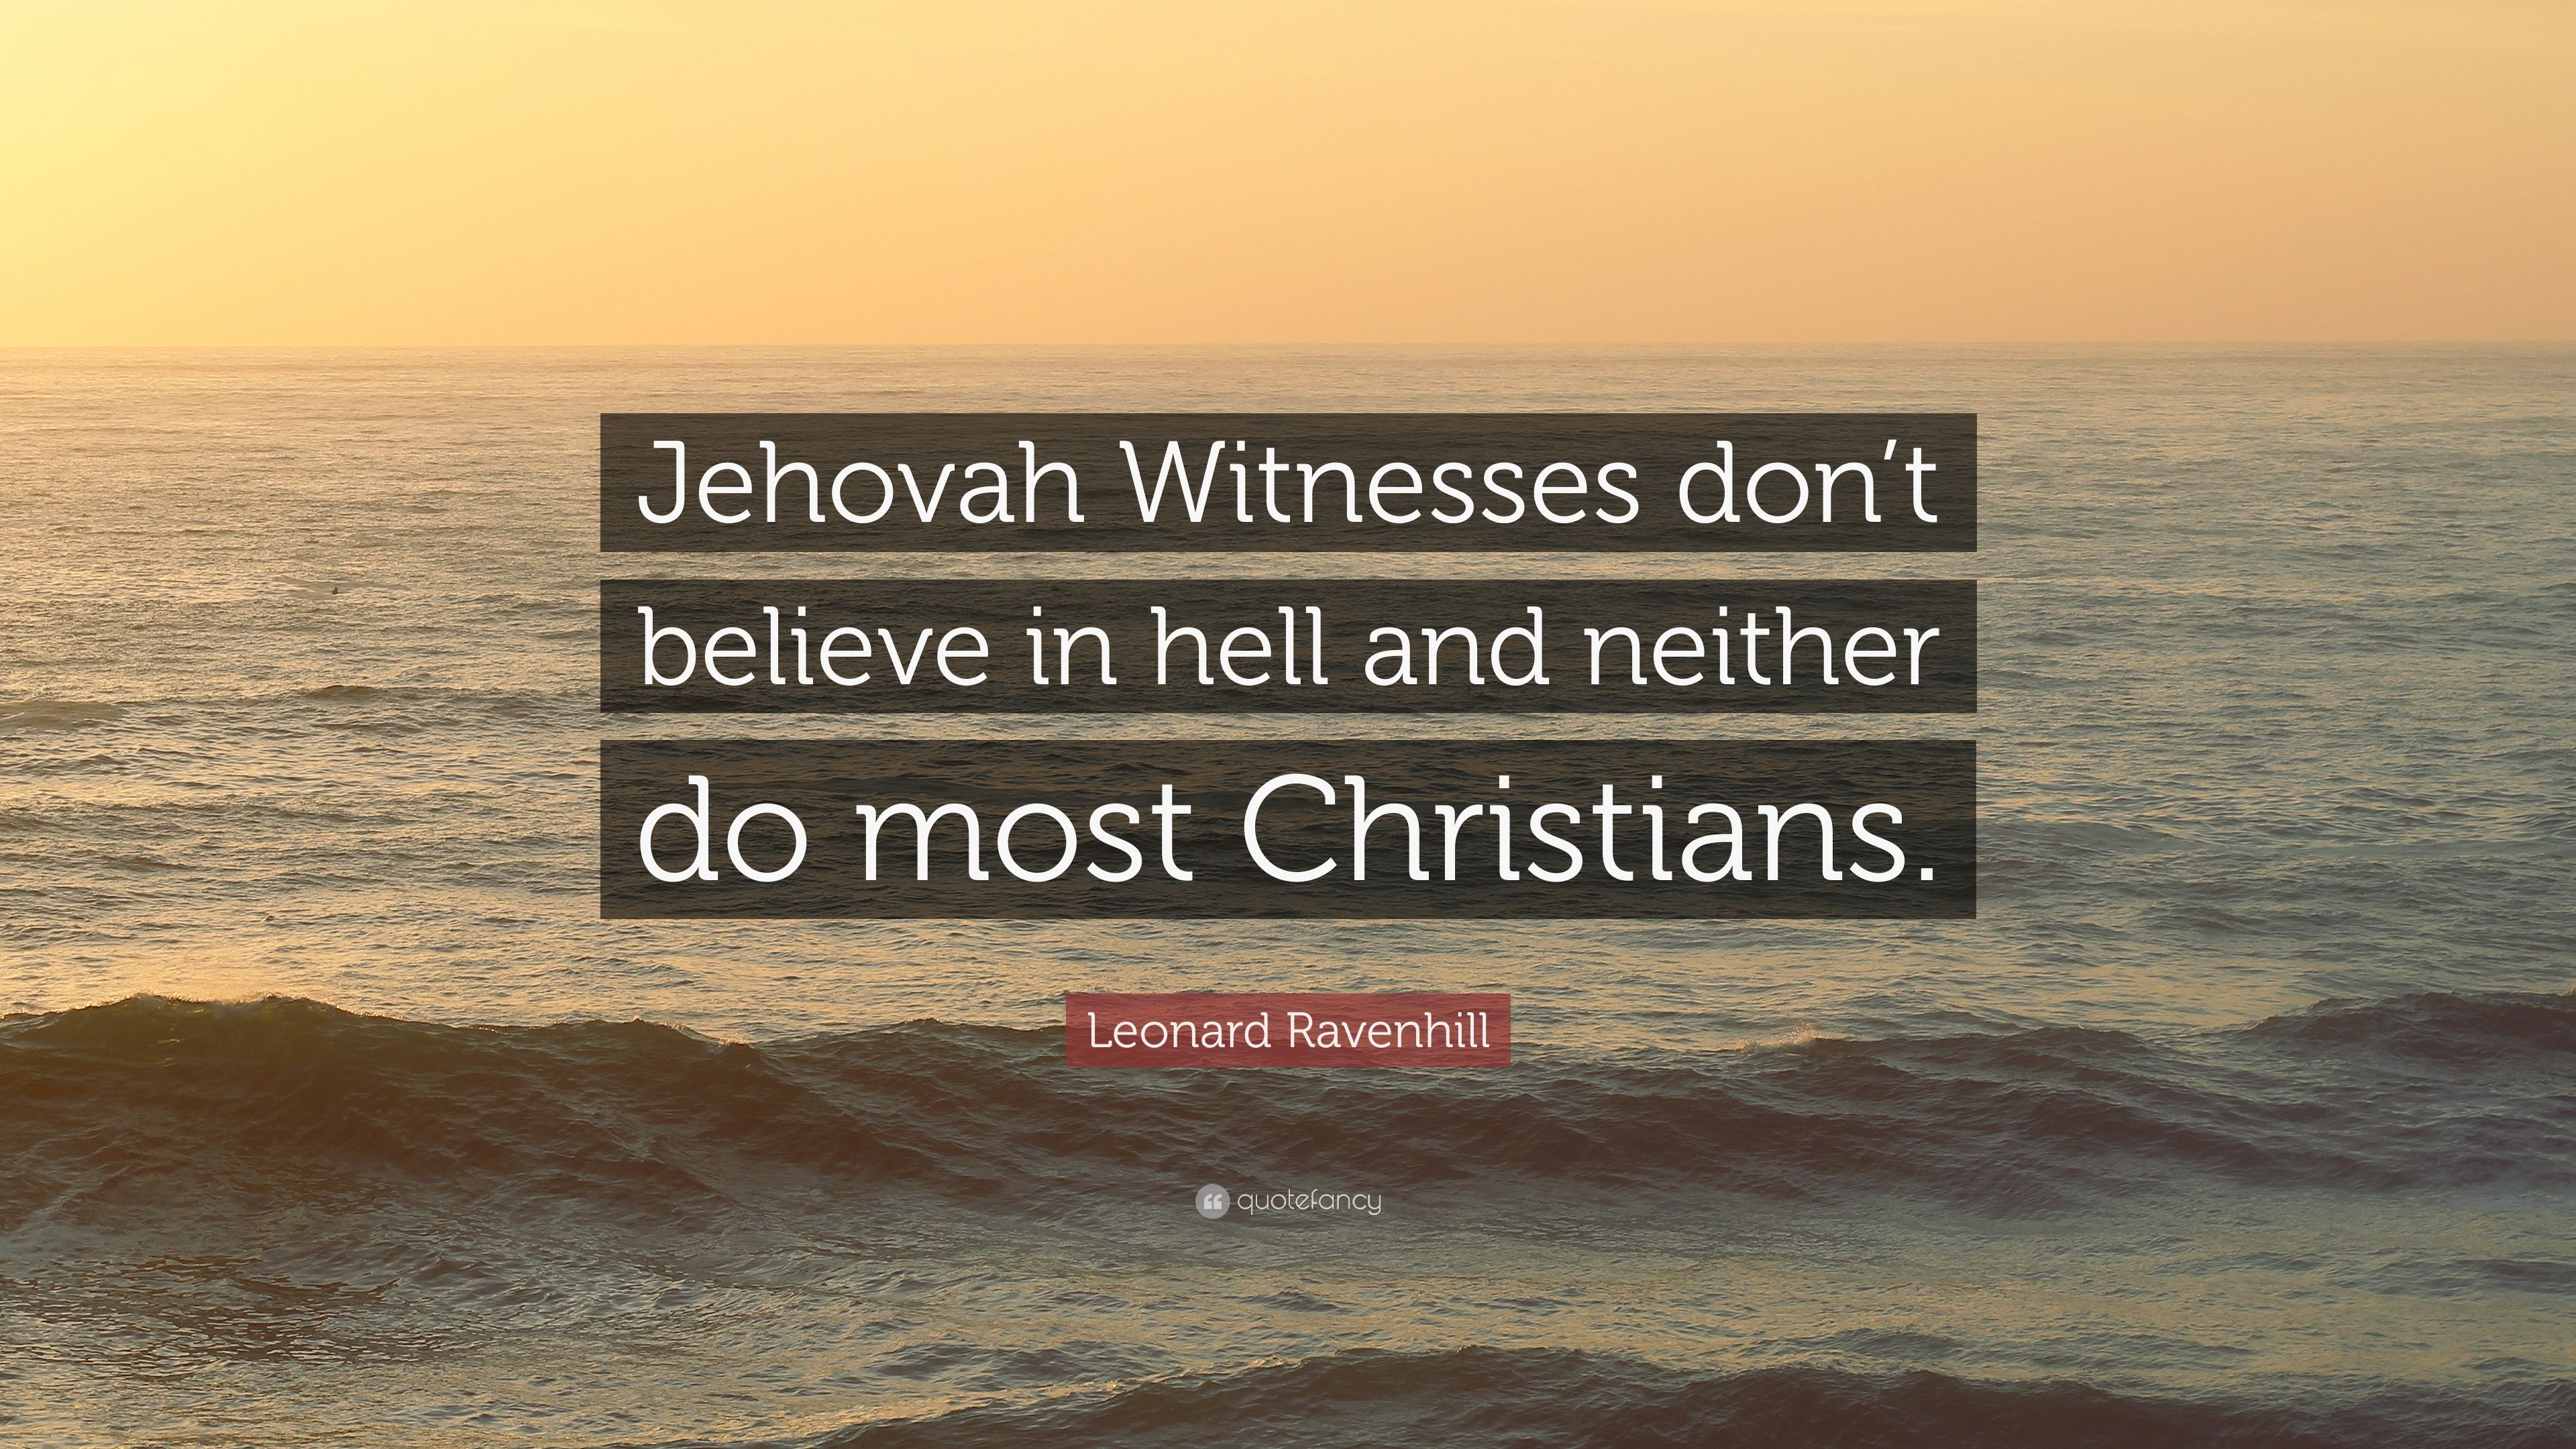 what do jehovah witnesses believe about hell